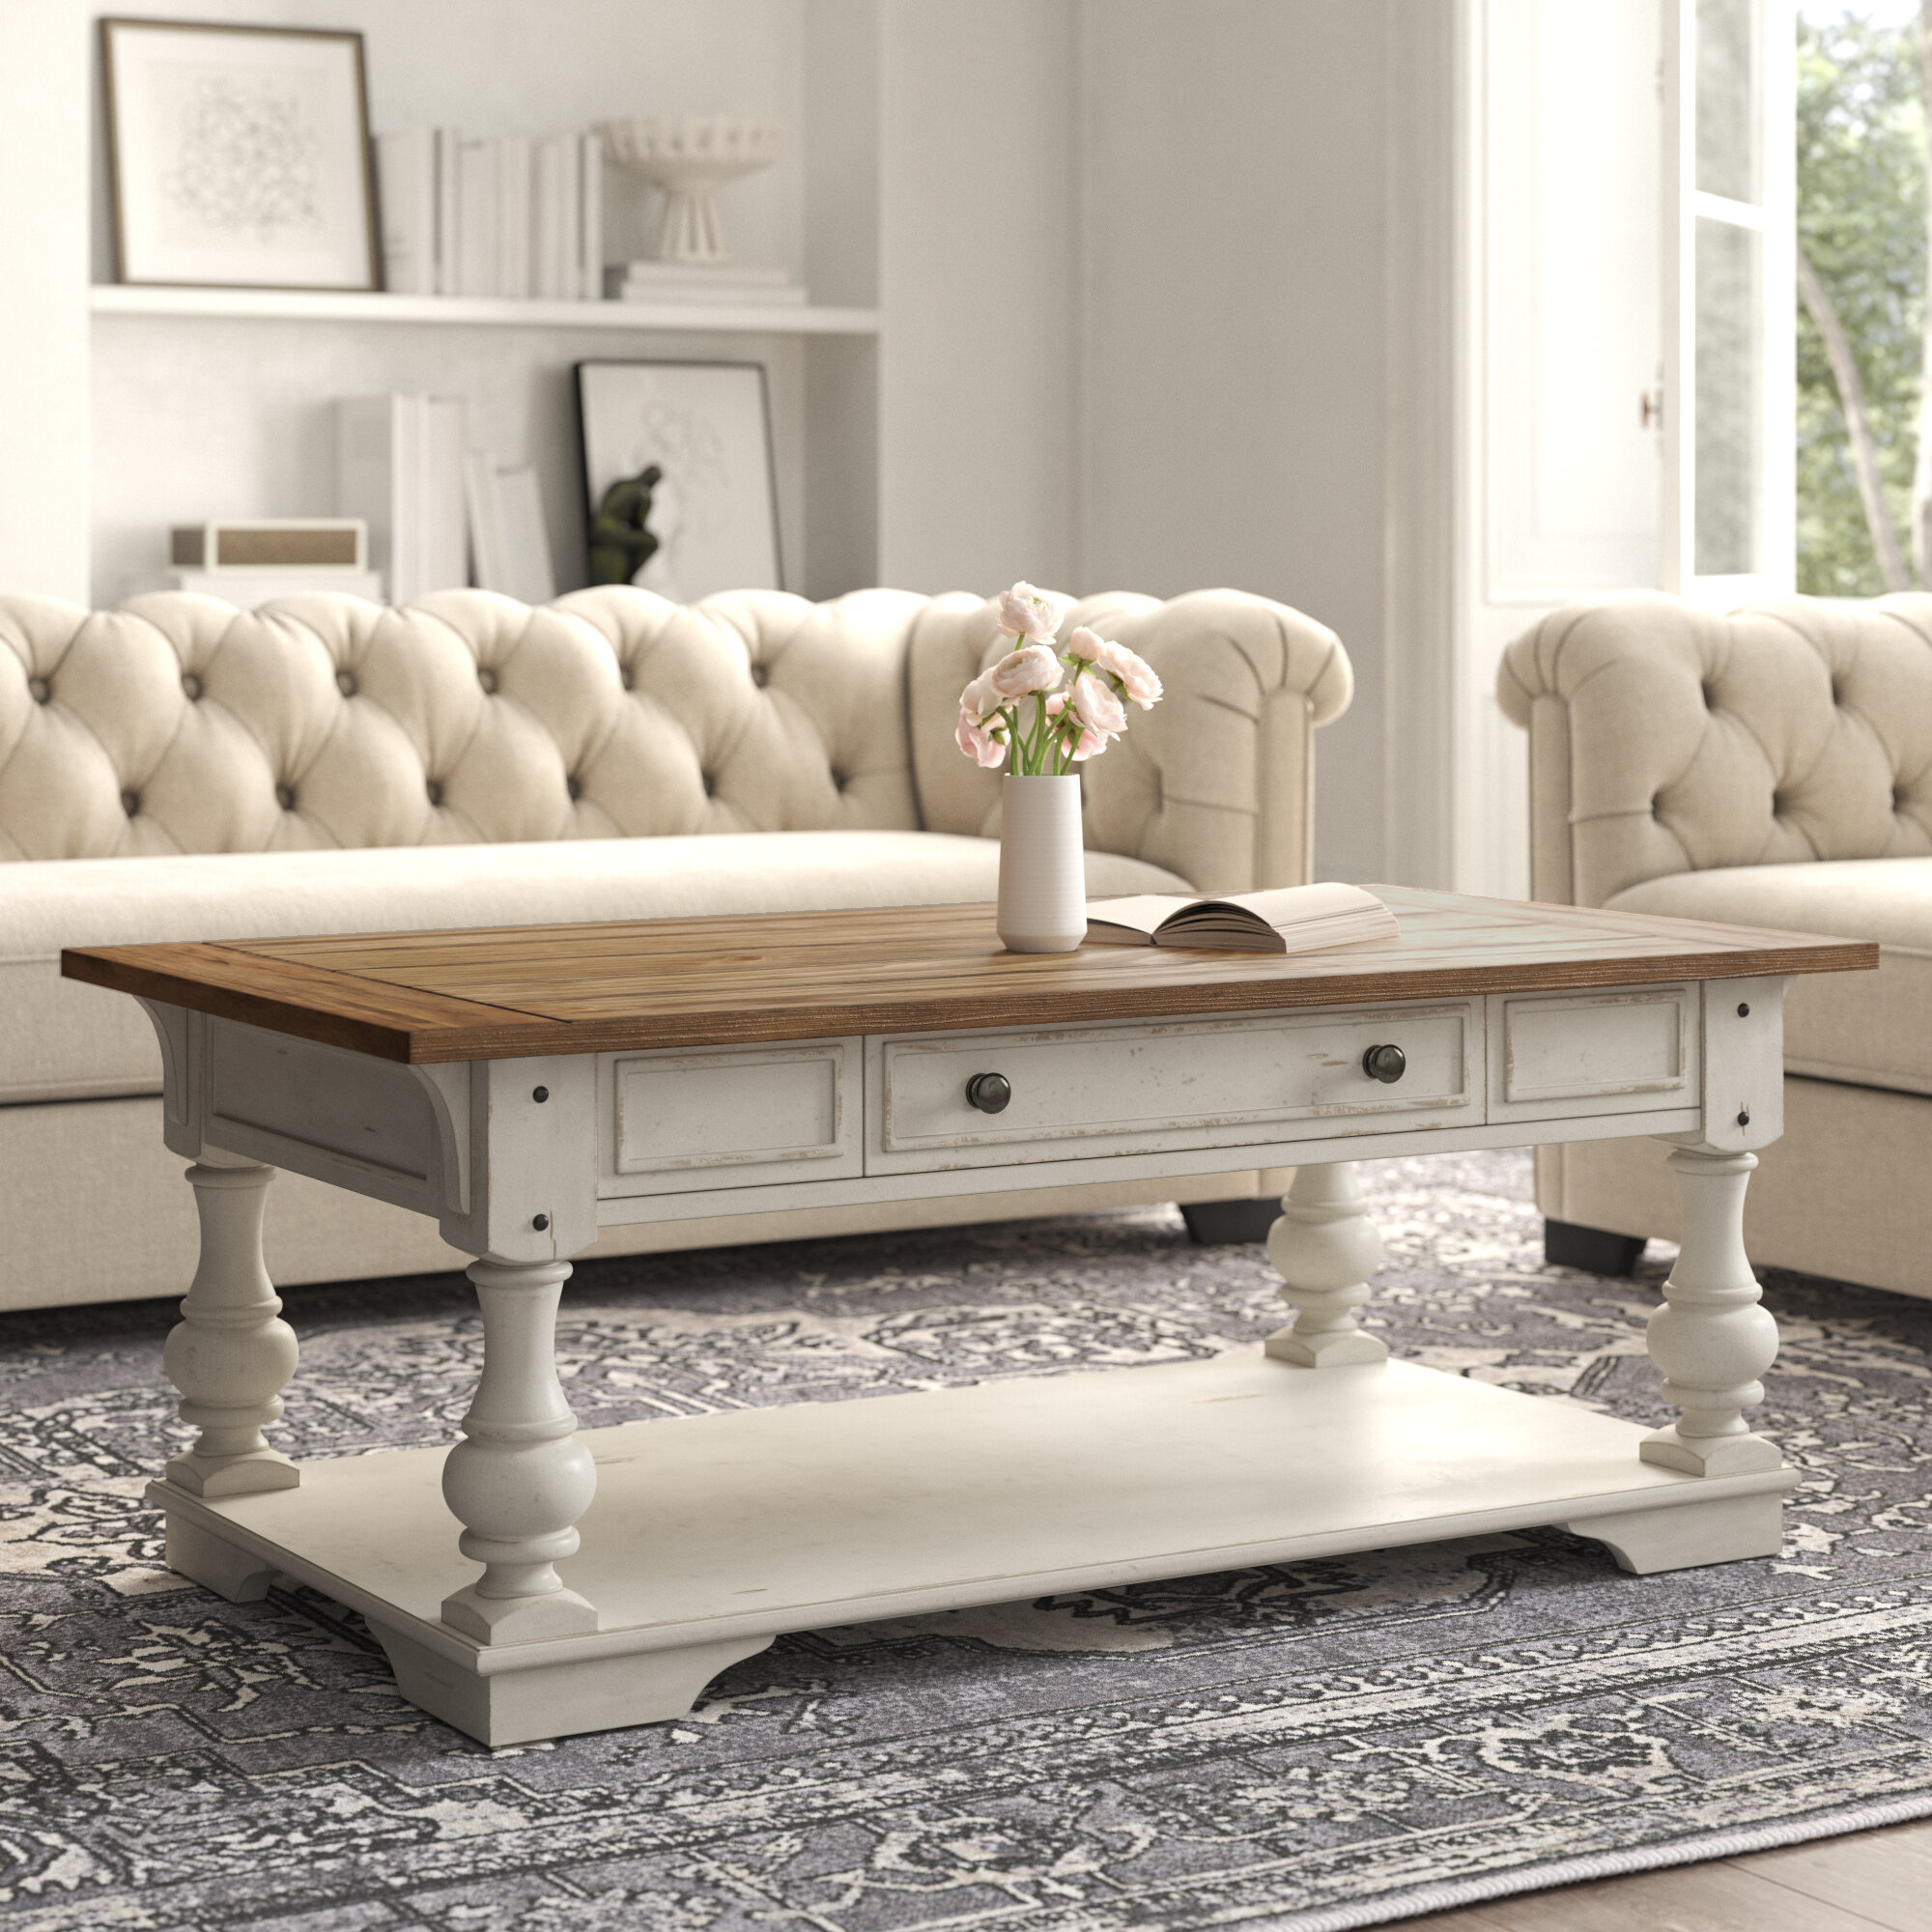 Kelly Clarkson Home Belle Meade Solid Wood Coffee Table With Storage Reviews Wayfair